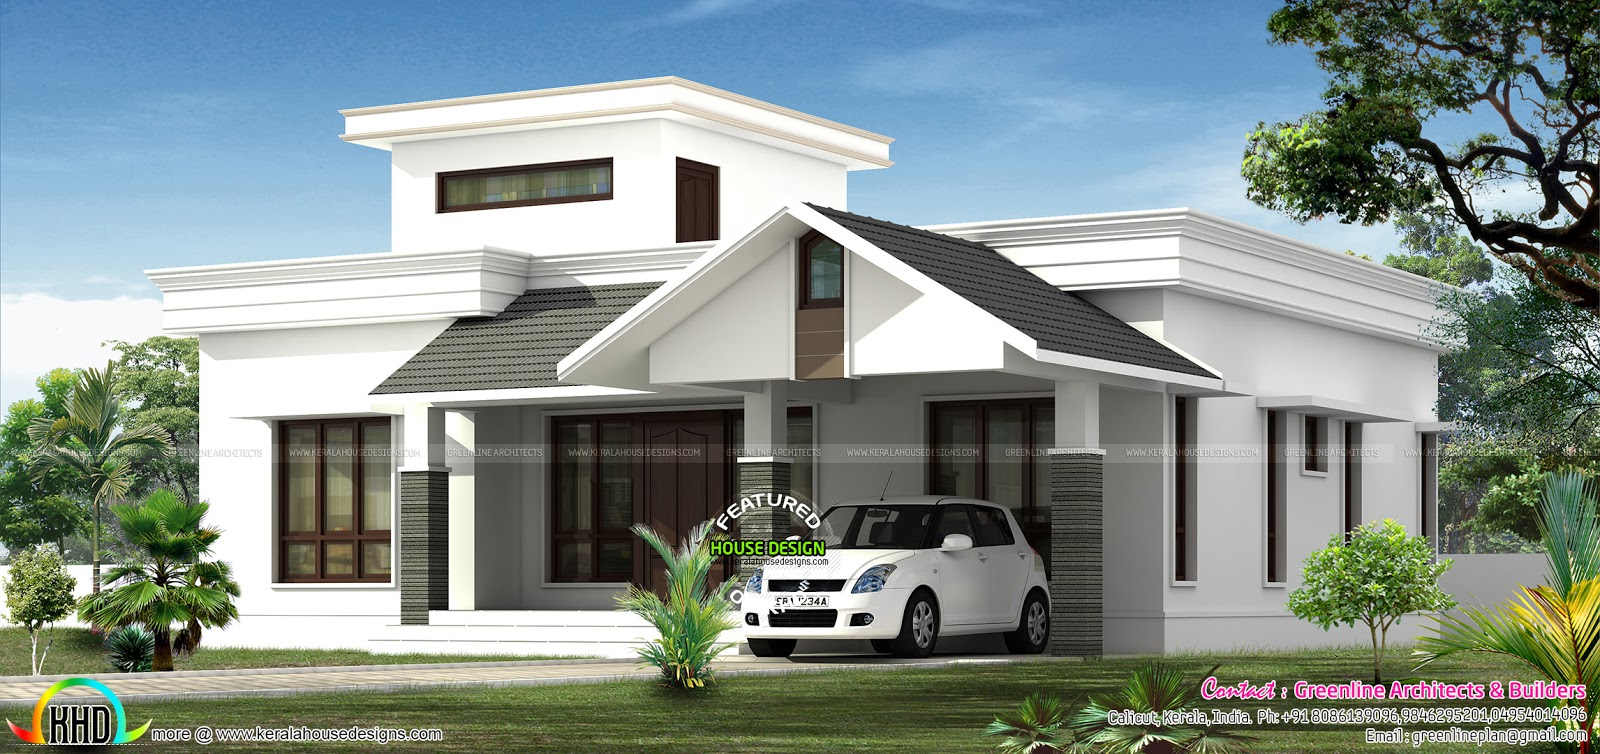 Low budjet single floor house design two side views for Low budget home plans